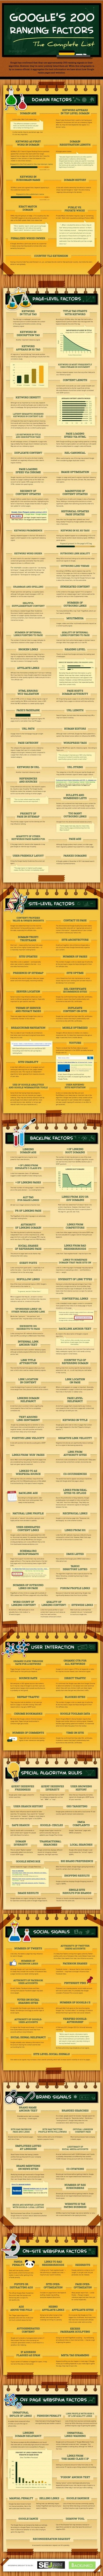 [Infographic] Google's 200 Ranking Factors - Search Engine Journal | Marketing for Schools | Scoop.it